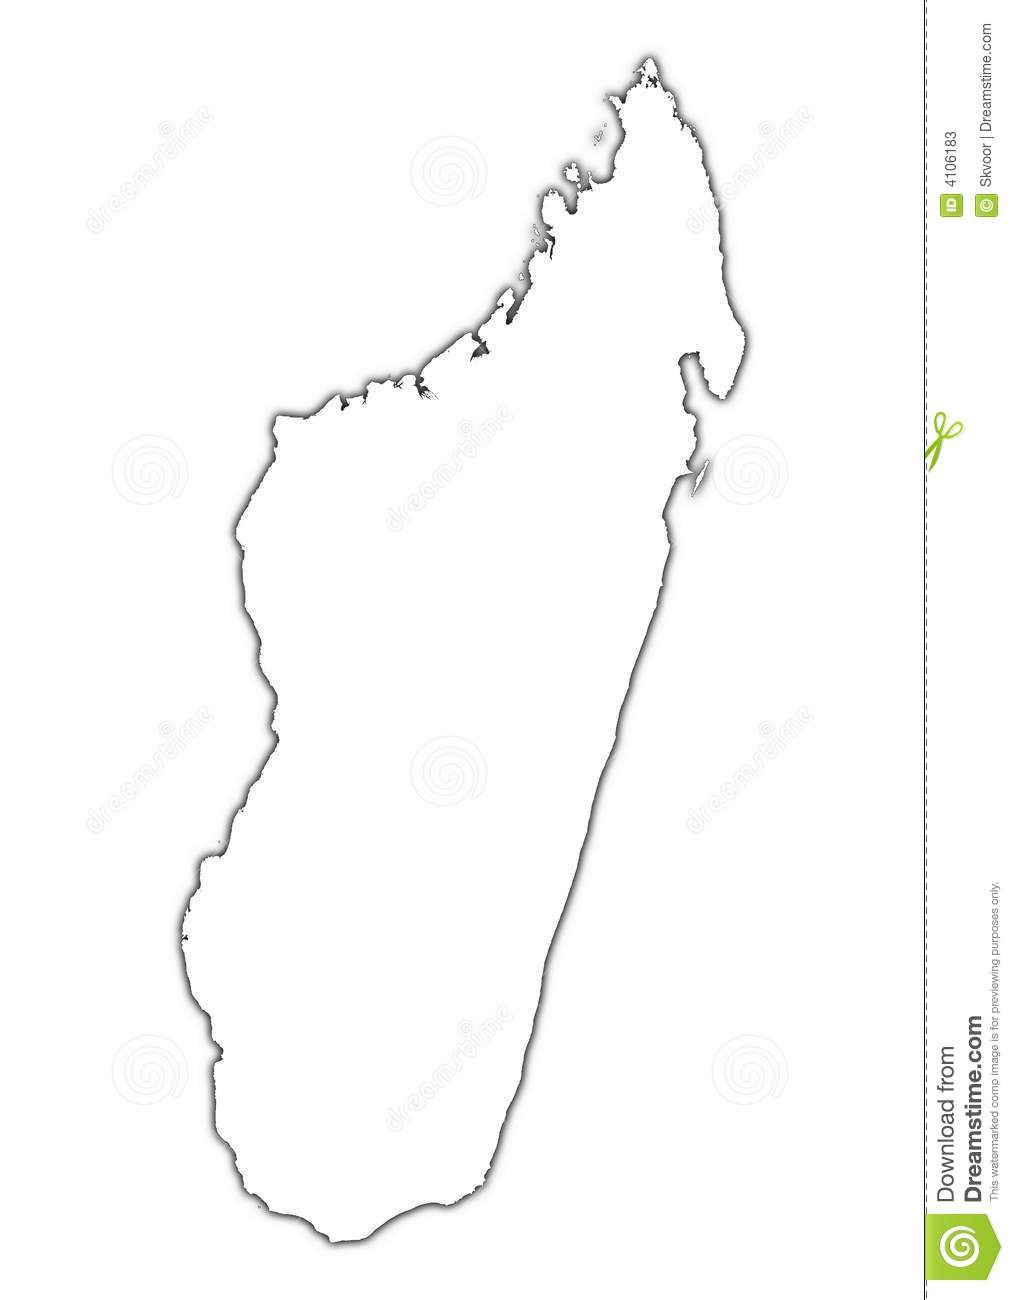 Madagascar Map With Shadow Stock Illustration Image Of Boundaries - Madagascar map outline